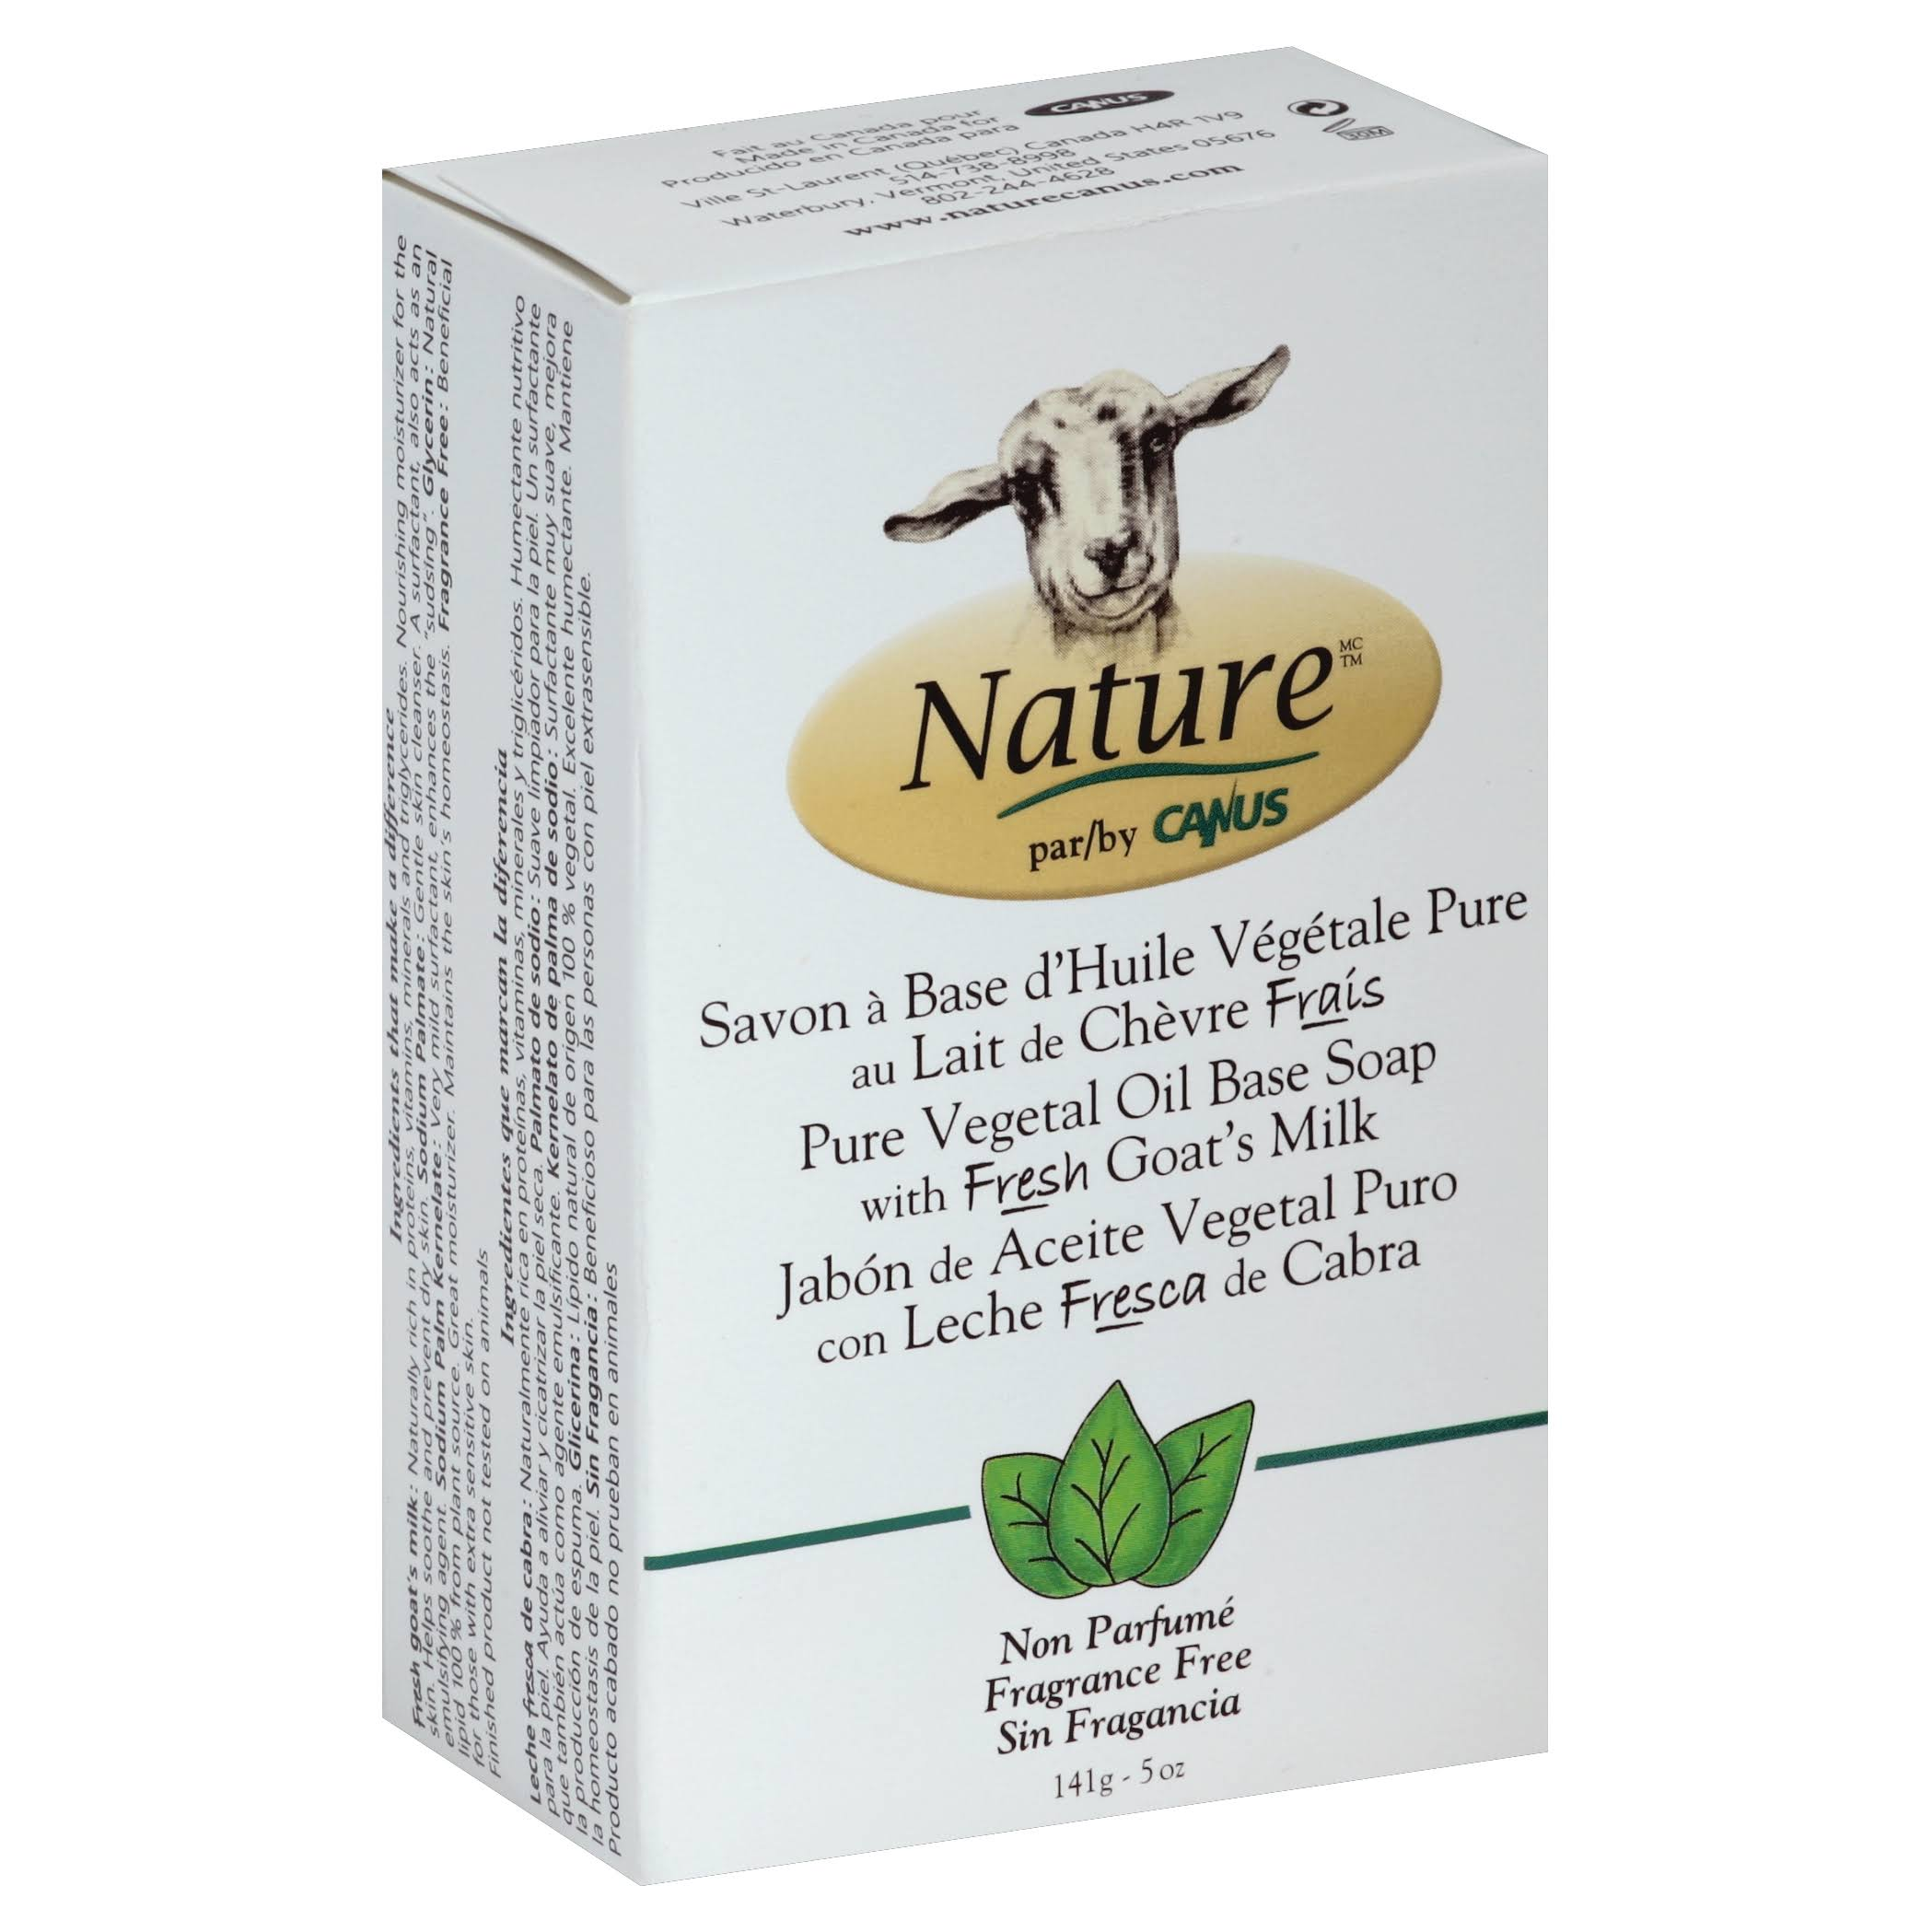 Nature Goat's Milk Soap - Fragrance Free, 5.0 oz